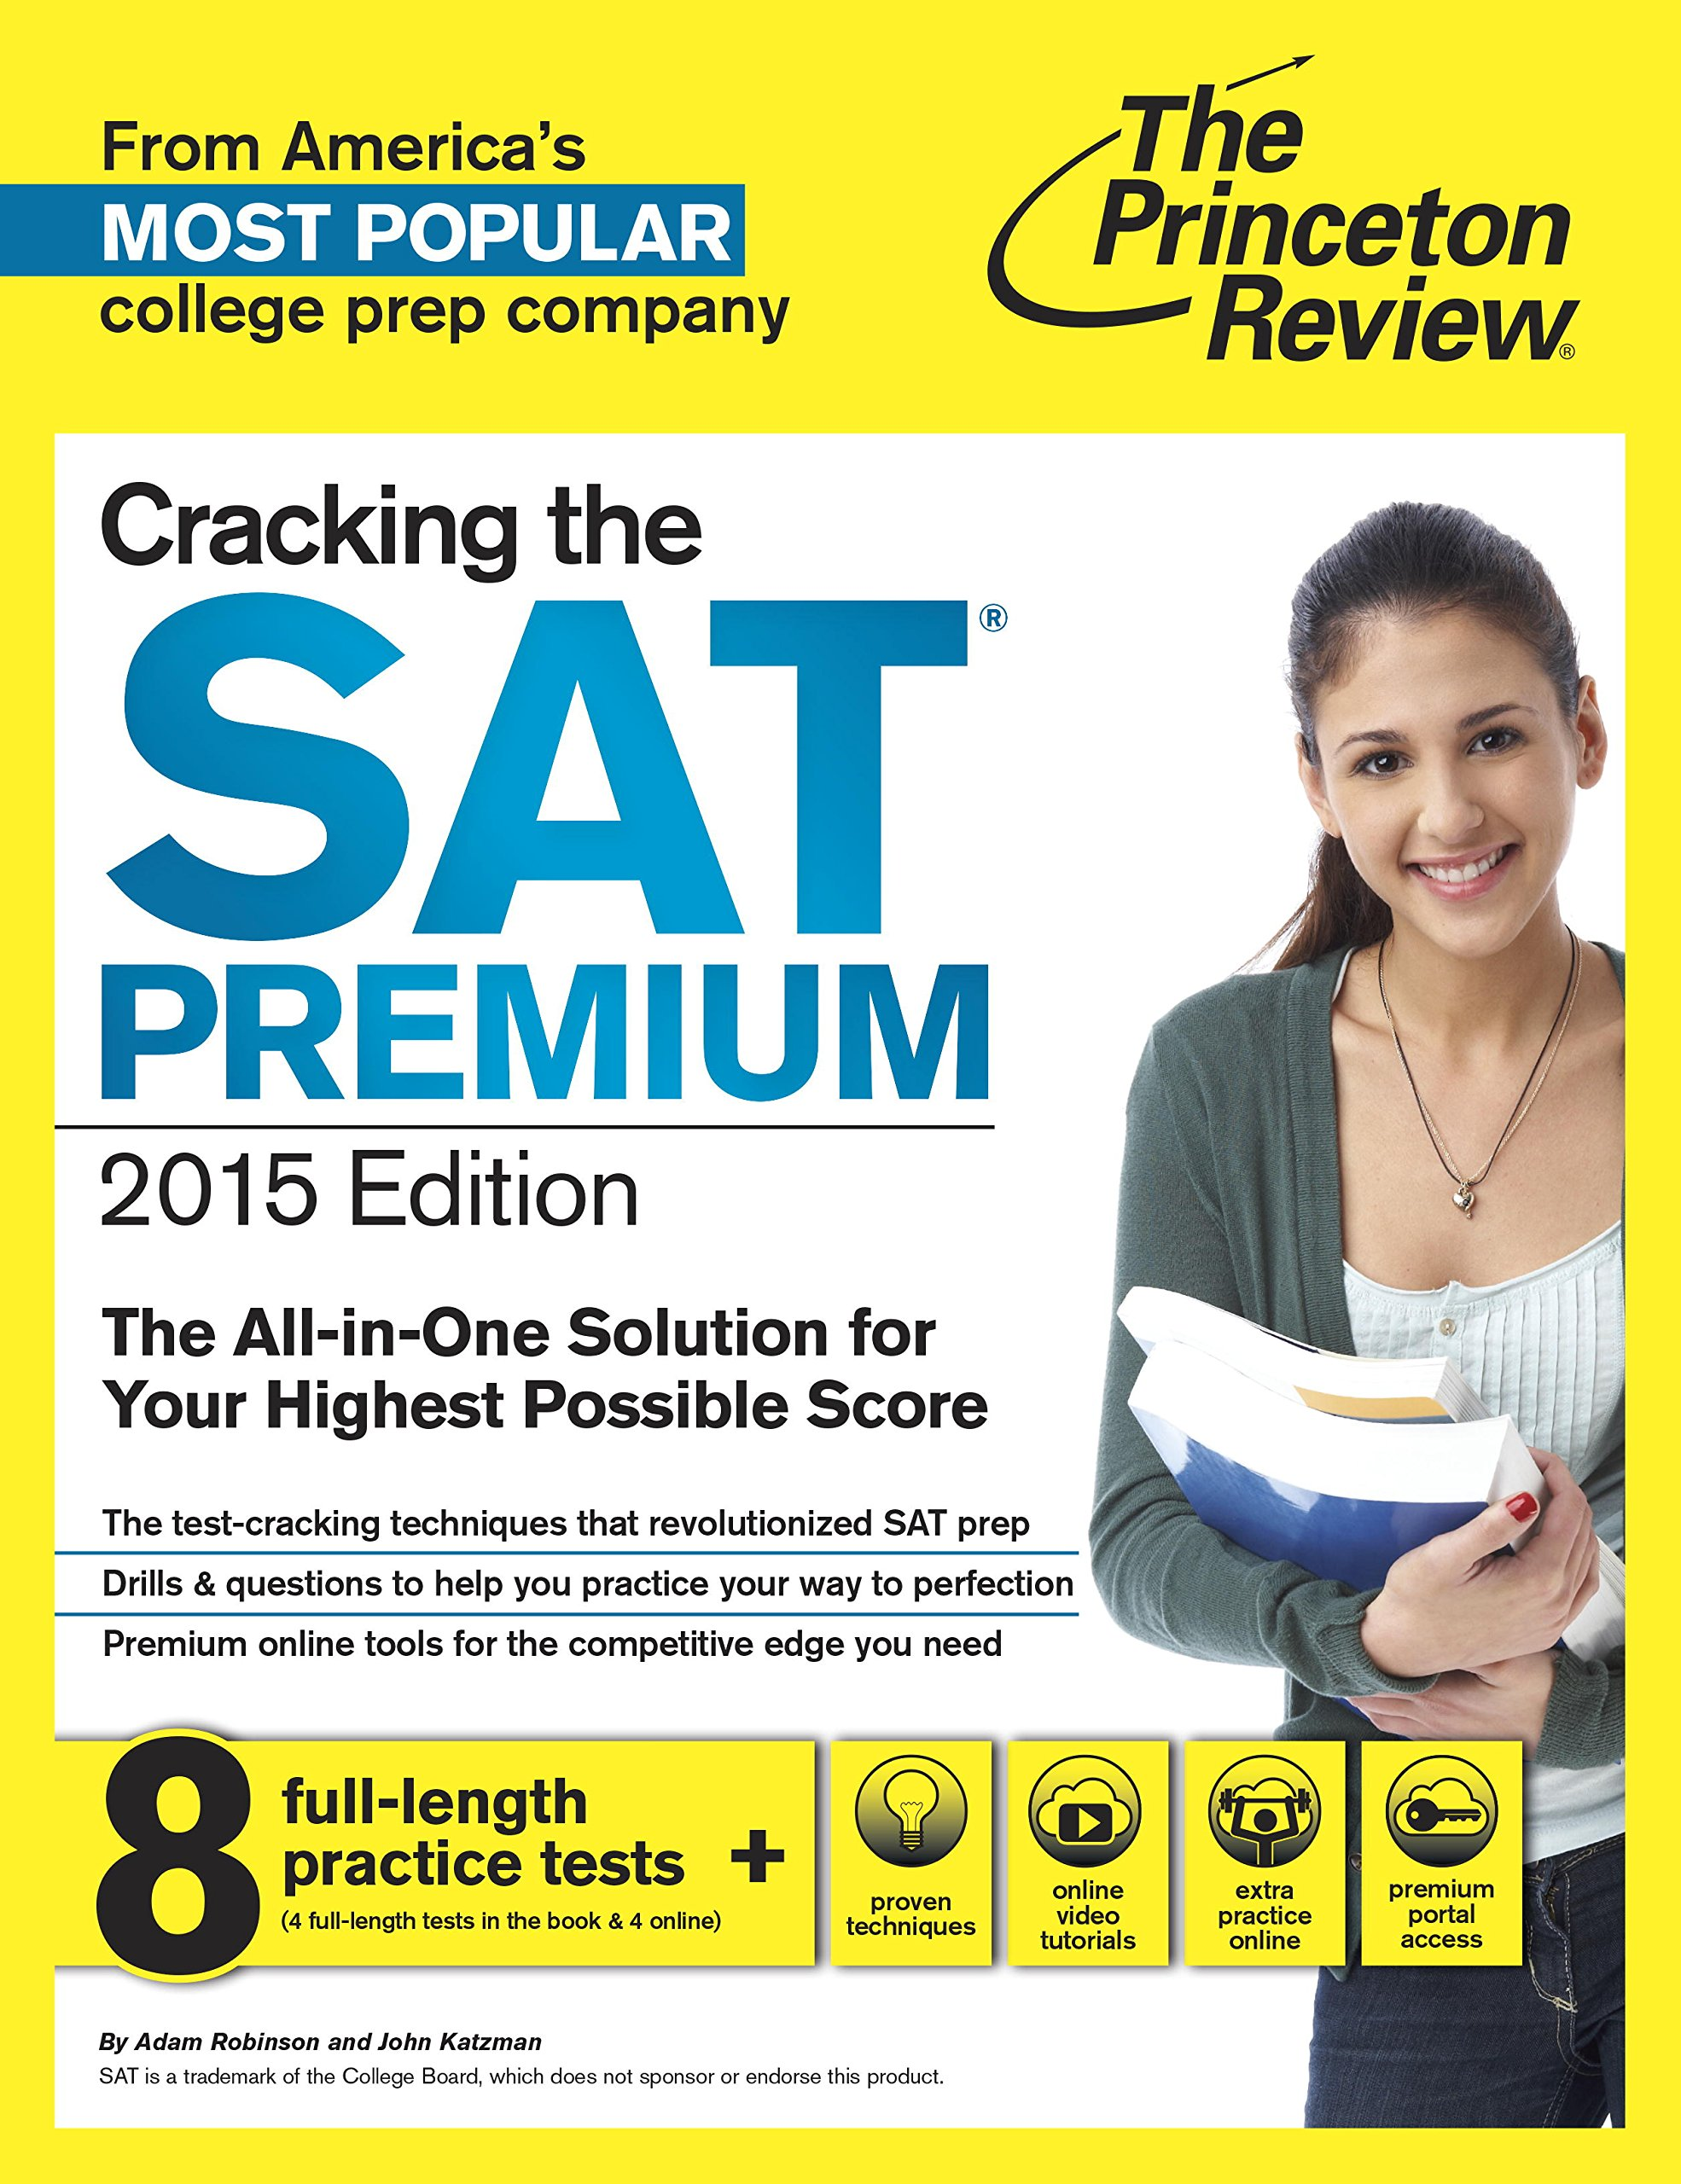 sat essay rubric 2010 Take a look at the sat essay rubric, or guidelines, scorers use to evaluate every essay who should take the sat with essay you don't have to take the sat with essay, but if you do, you'll be able to apply to schools that require it.